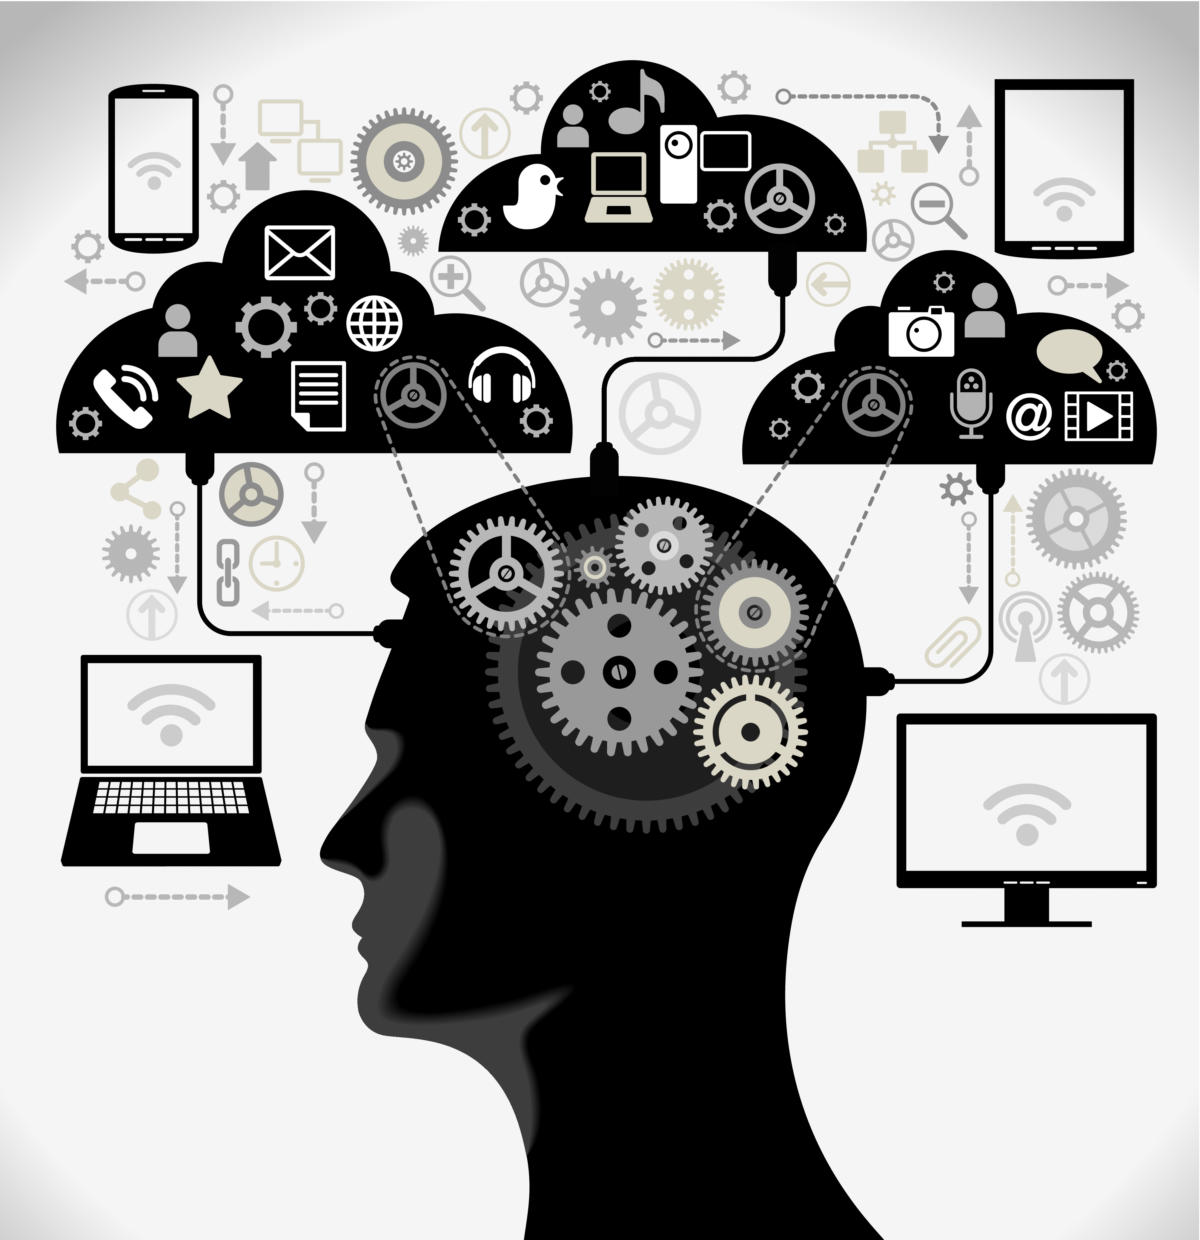 human head interface computers gears thoughts clouds tablets mobile brain